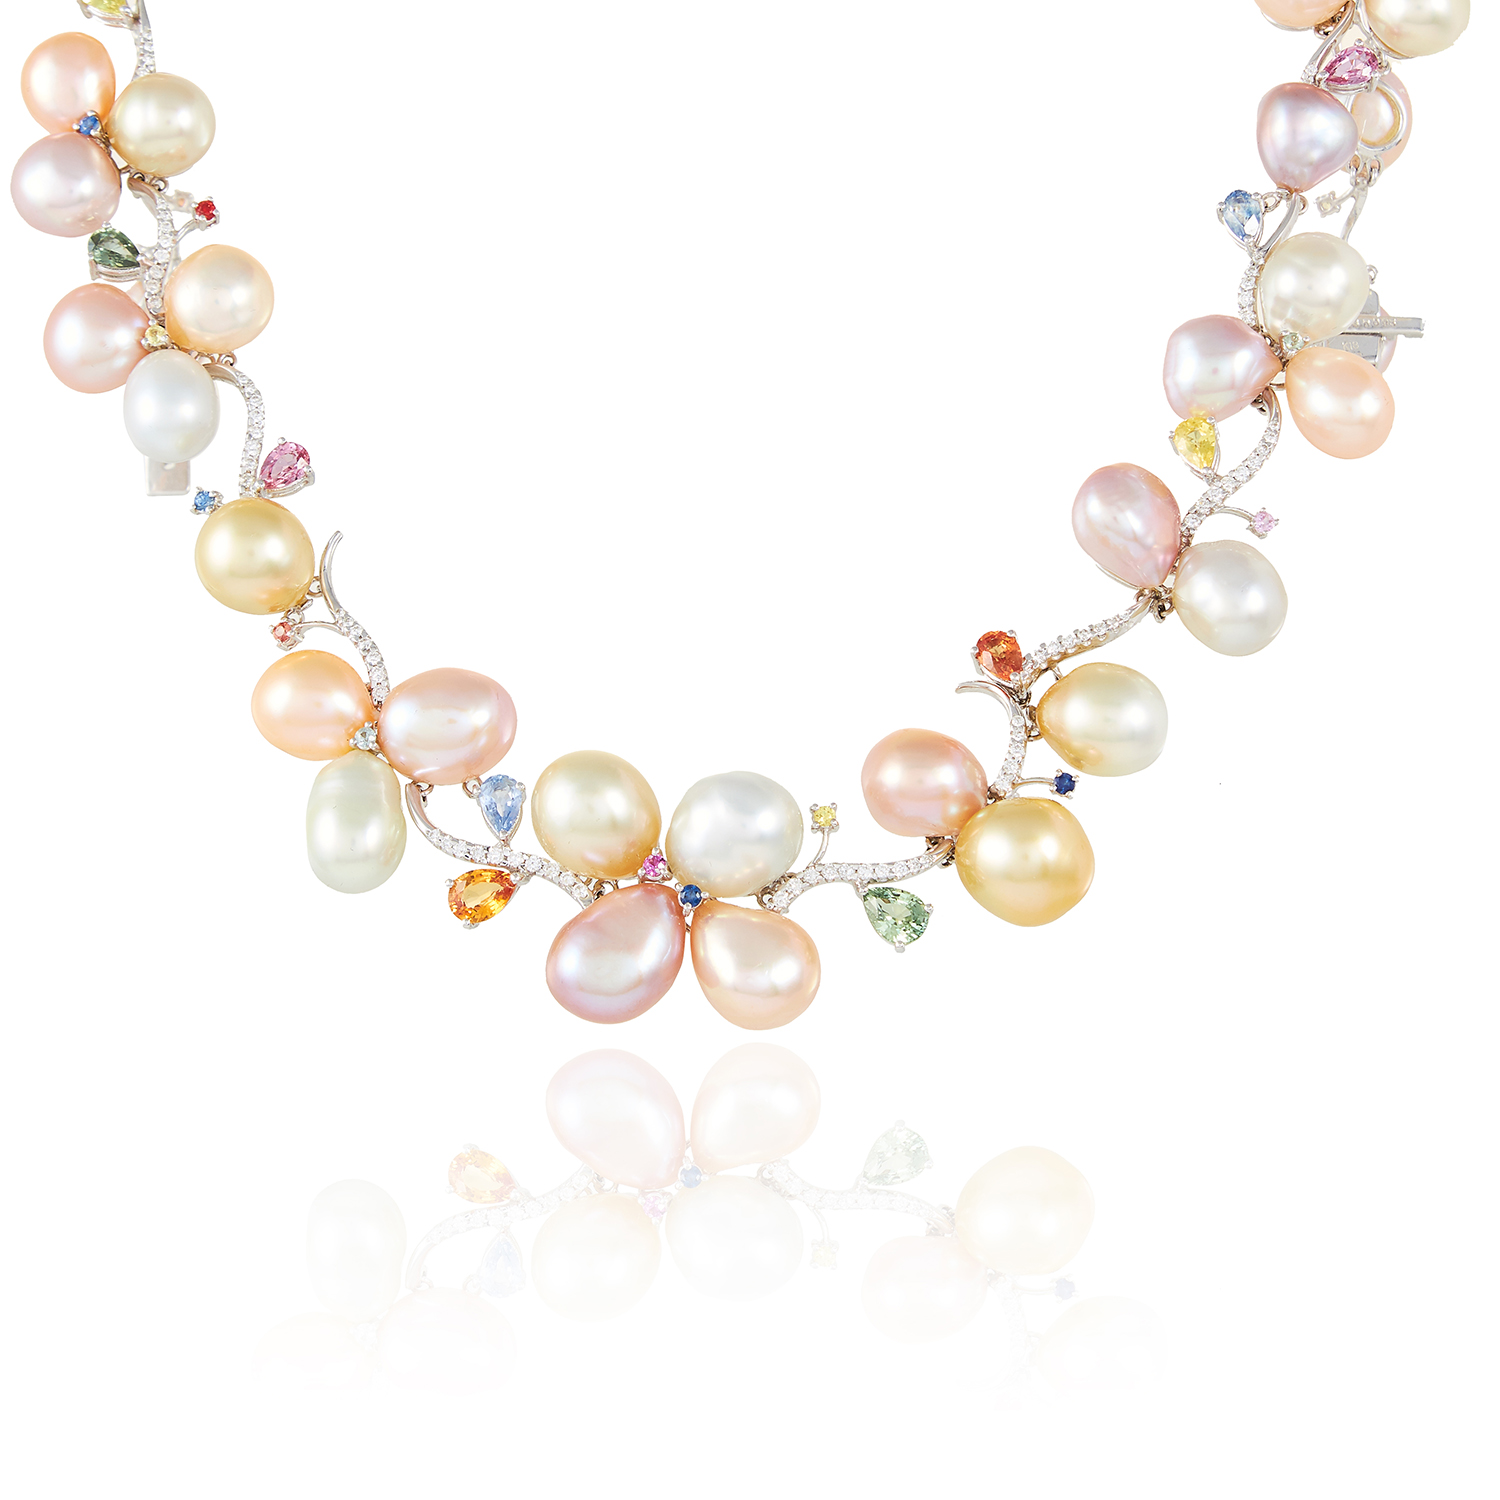 A PEARL, SAPPHIRE AND DIAMOND NECKLACE, SCHOEFFEL in 18ct white gold, designed as a collar set